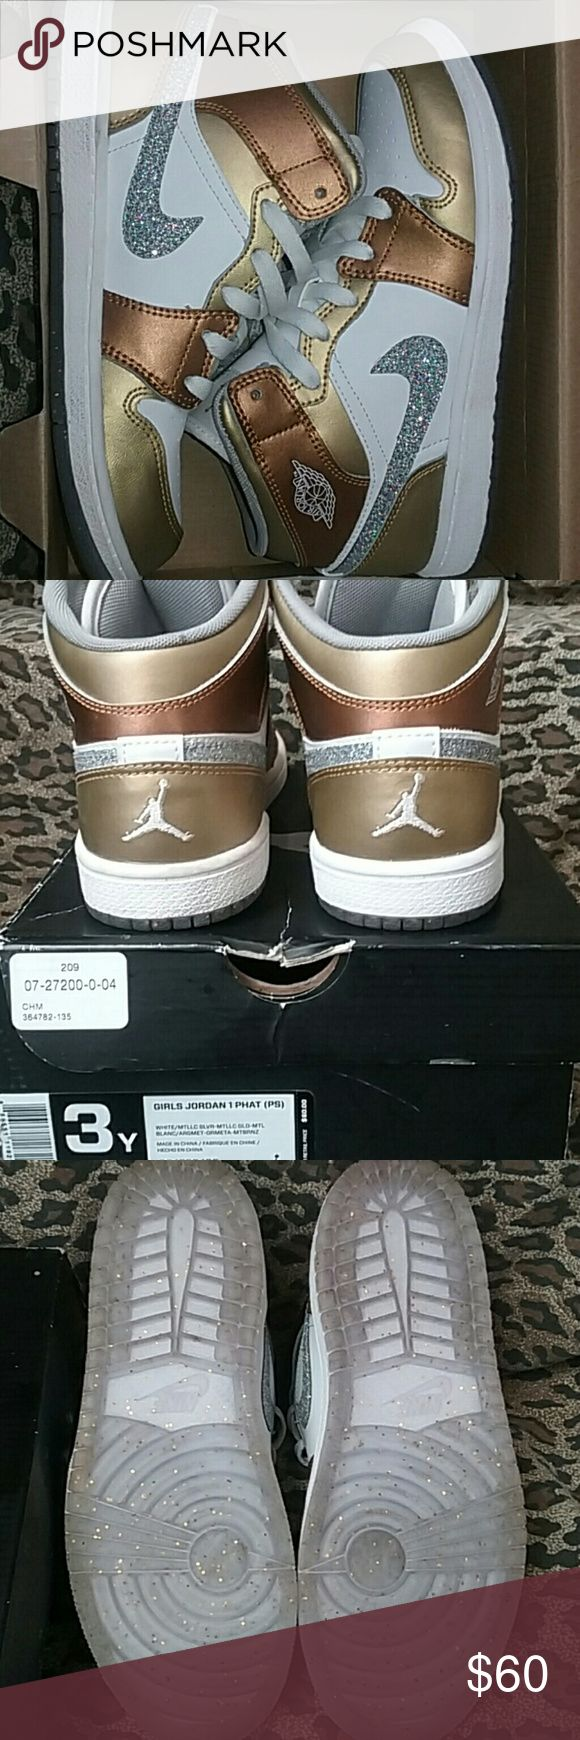 Girls tennis shoes Copper, gold, white, sparkly check, glittery bottoms Jordan Shoes Sneakers